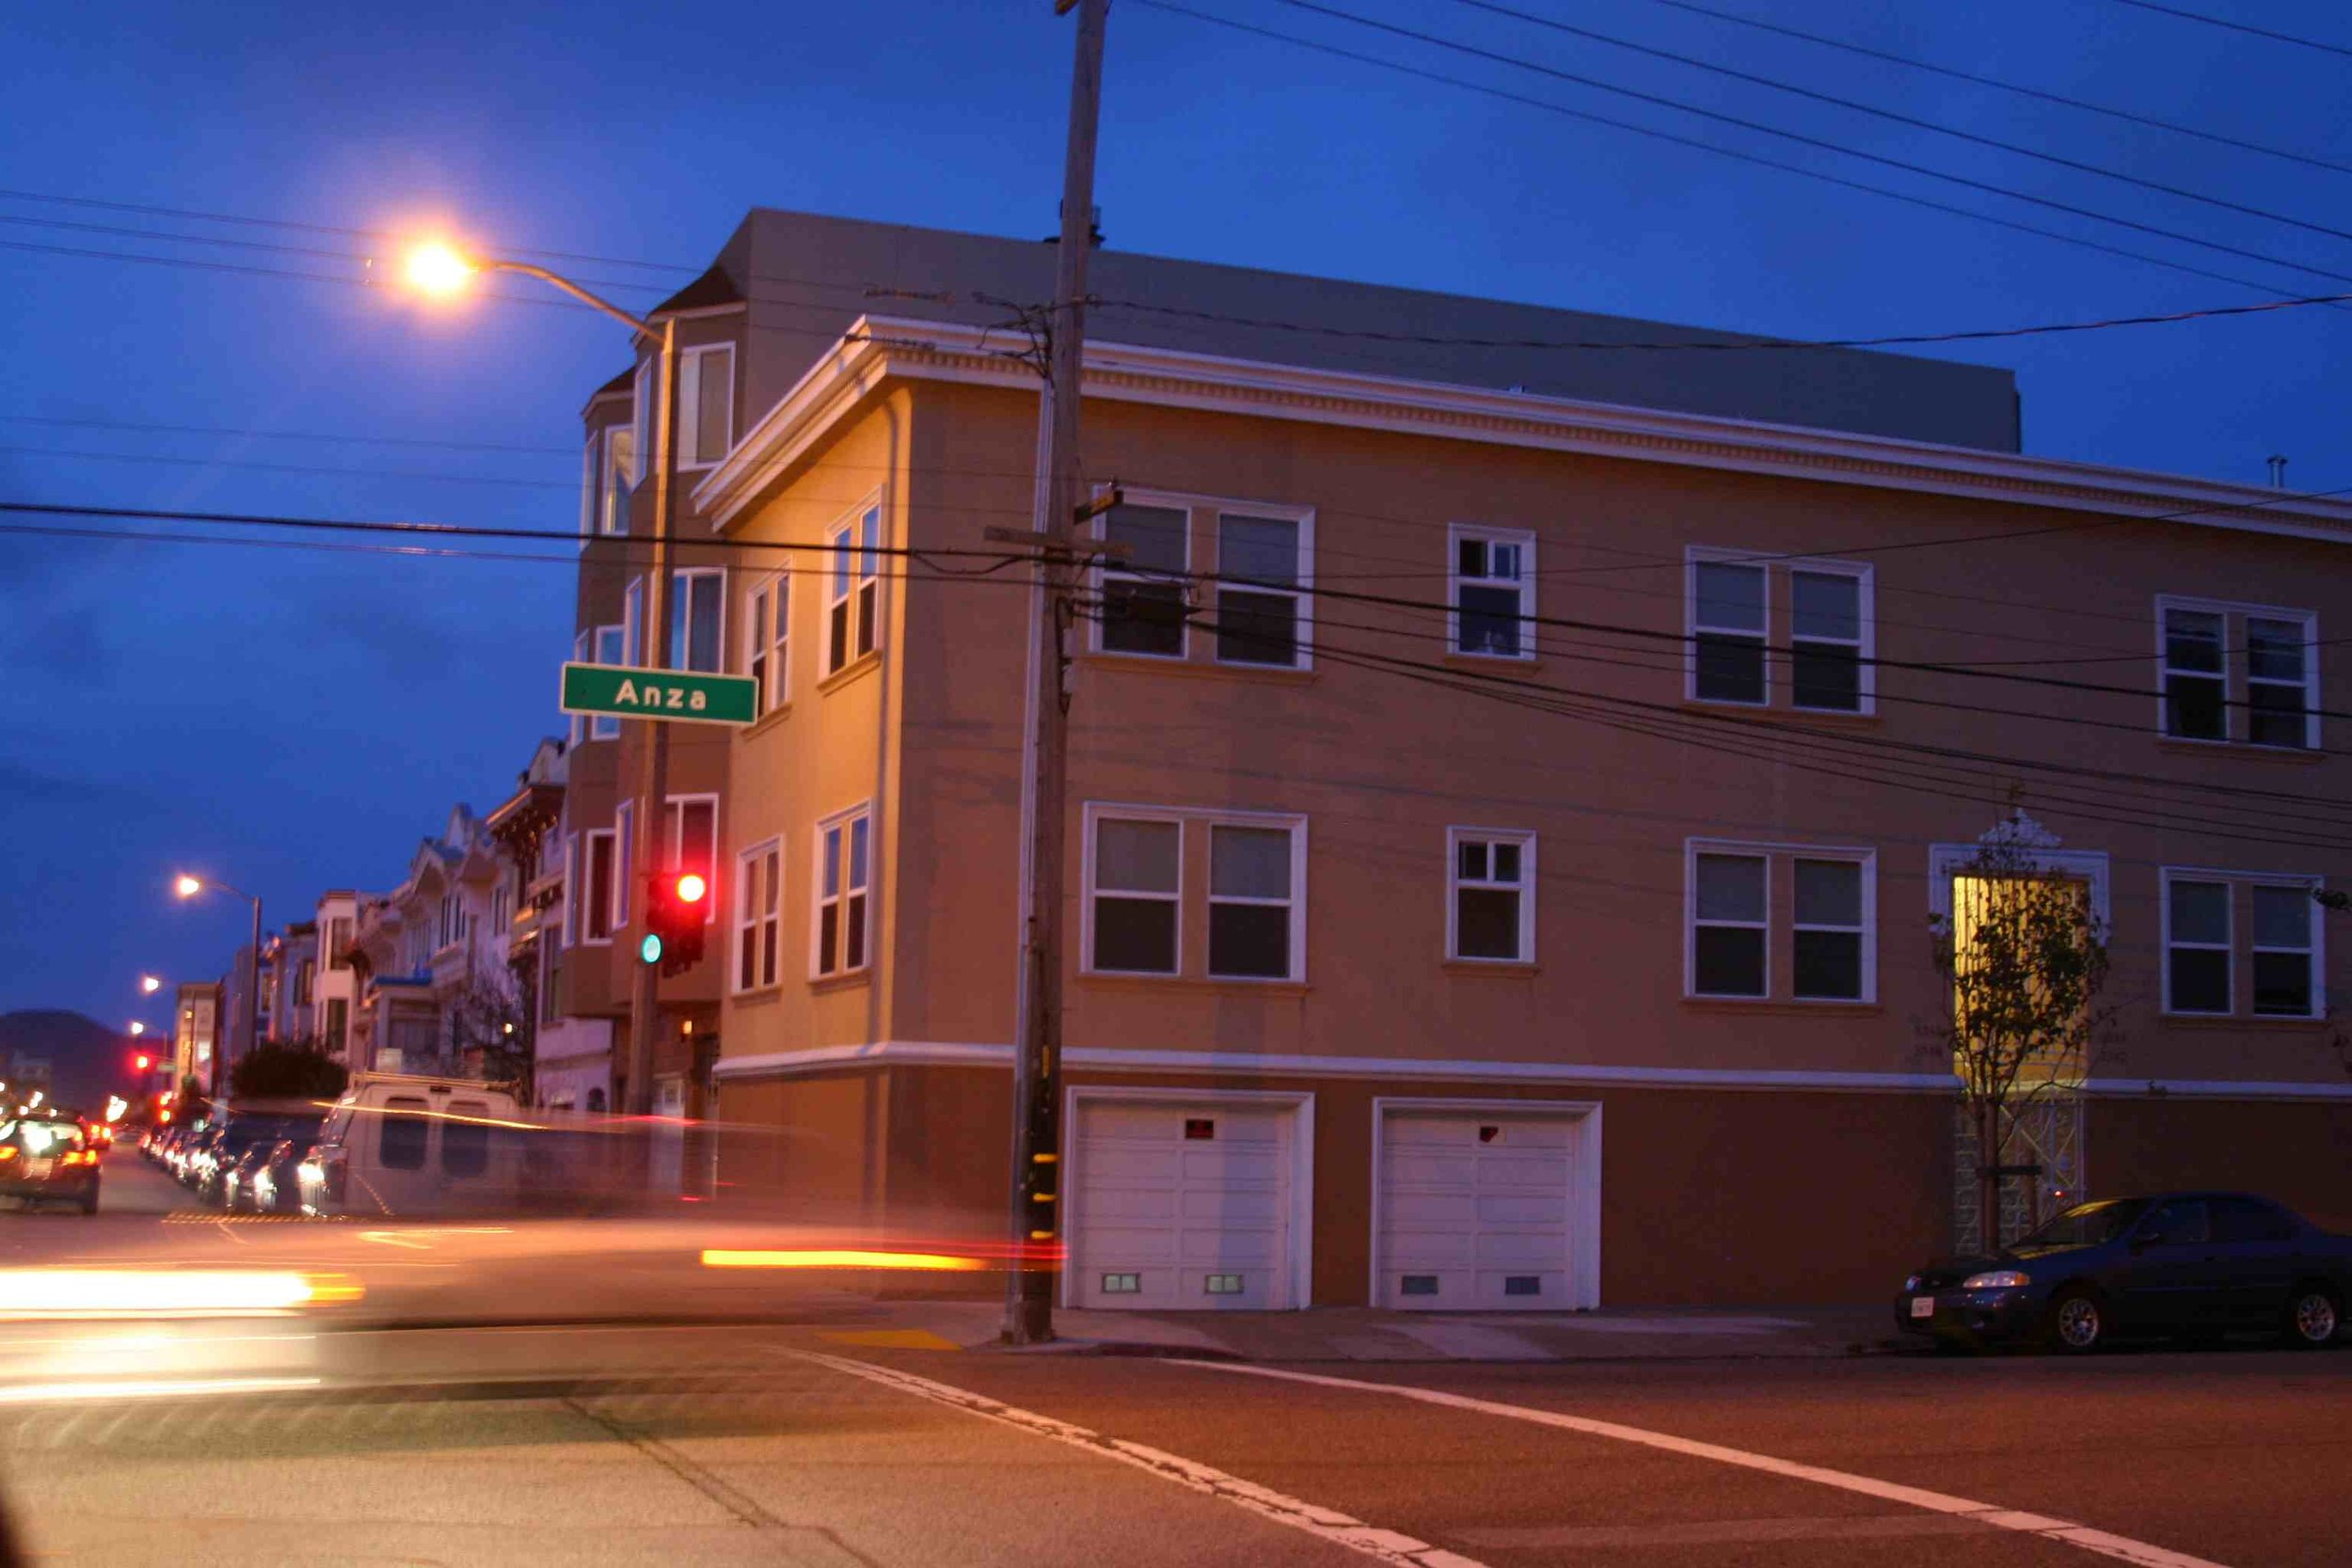 Dusk on Anza, San Francisco, February 2012, Photo Credit: Kate Gallery